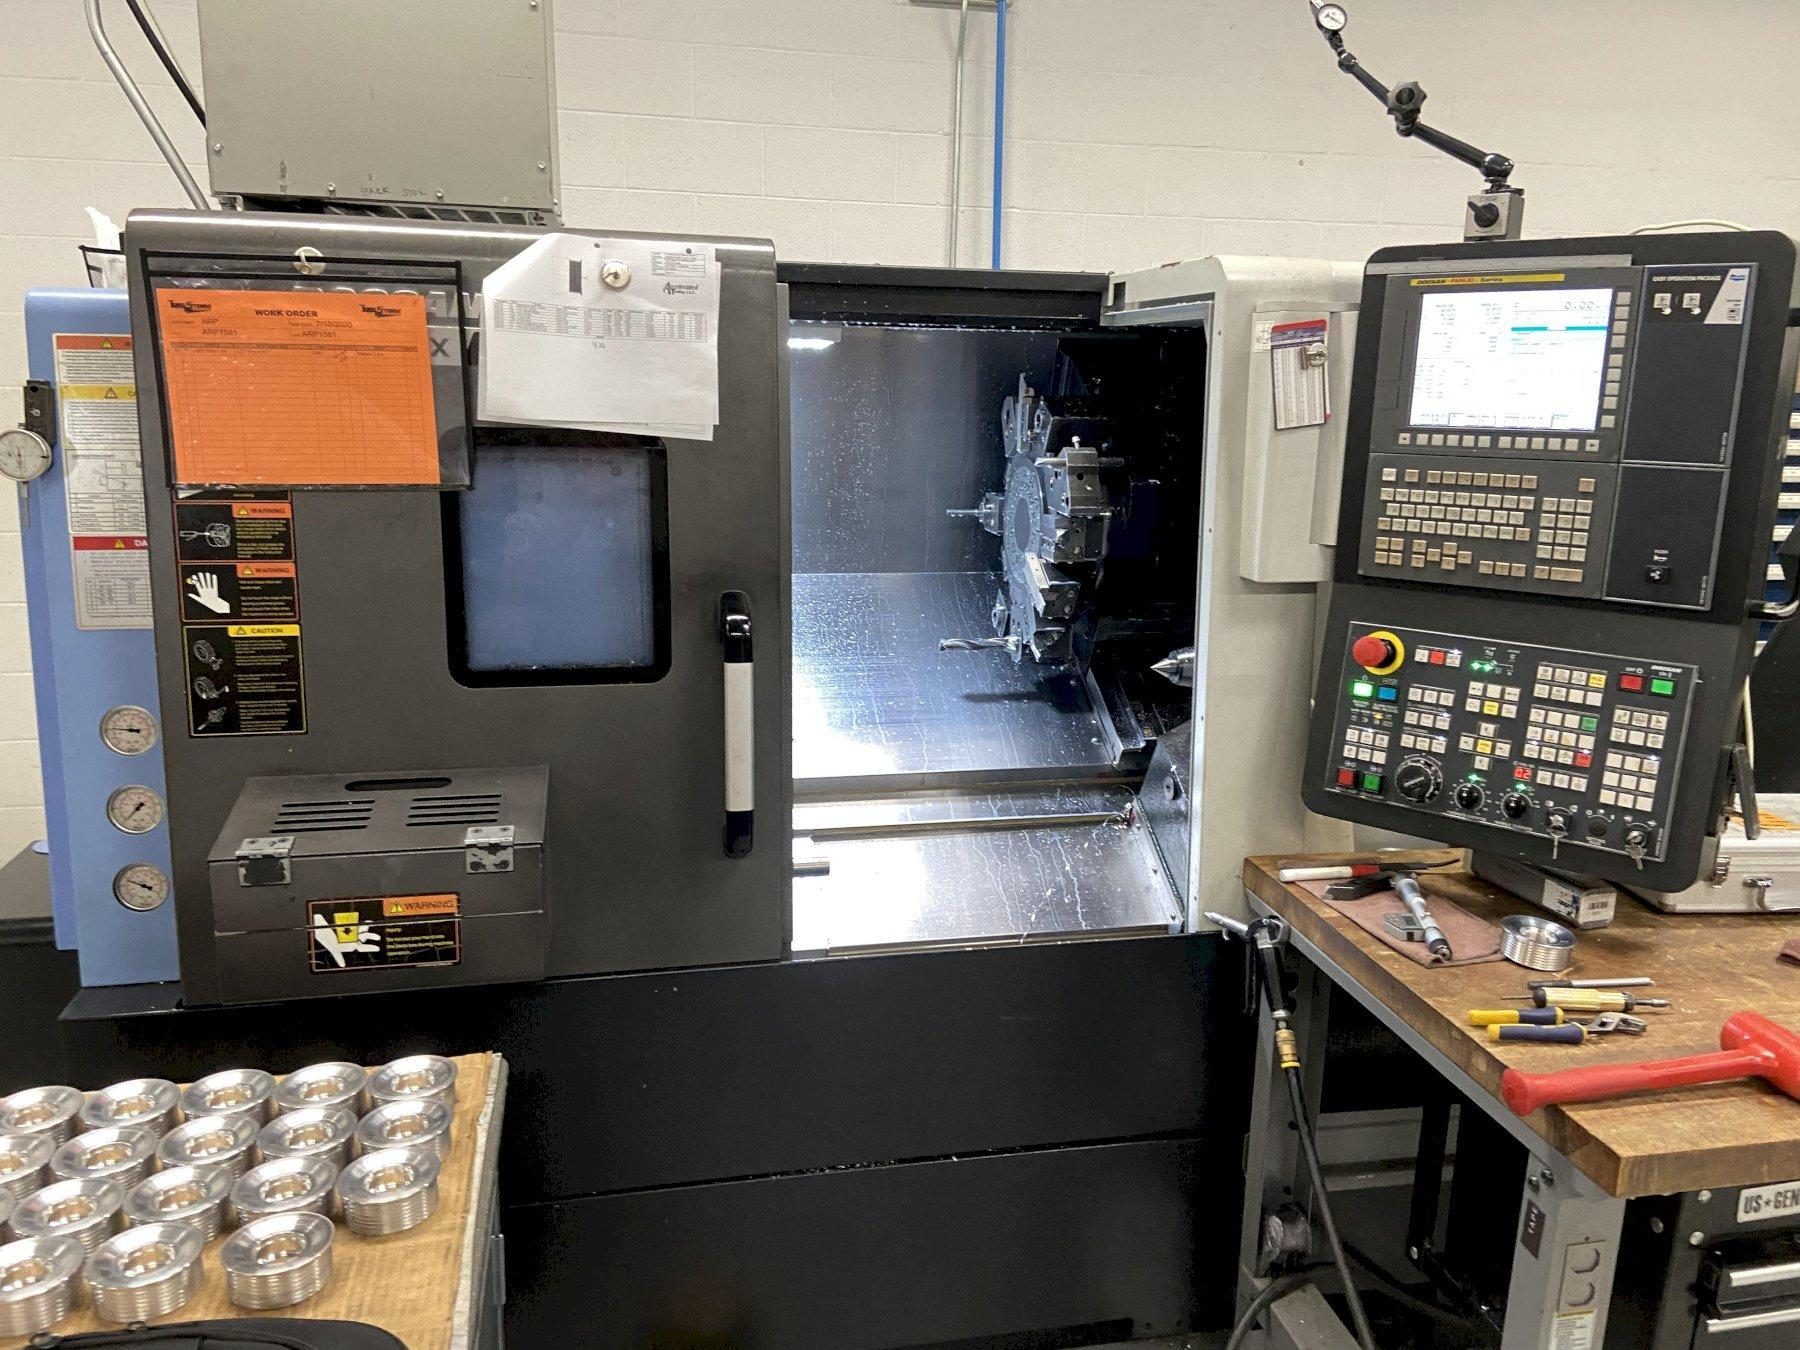 "Doosan Lynx 2100LMB CNC Lathe, Fanuc i, 8"" Chuck, 23.6"" Swing, 20"" Cut Length, 2.46"" Bar Cap, Parts Catcher, Live Milling, Prog Tailstock, C/C, Low Hrs, 2016"